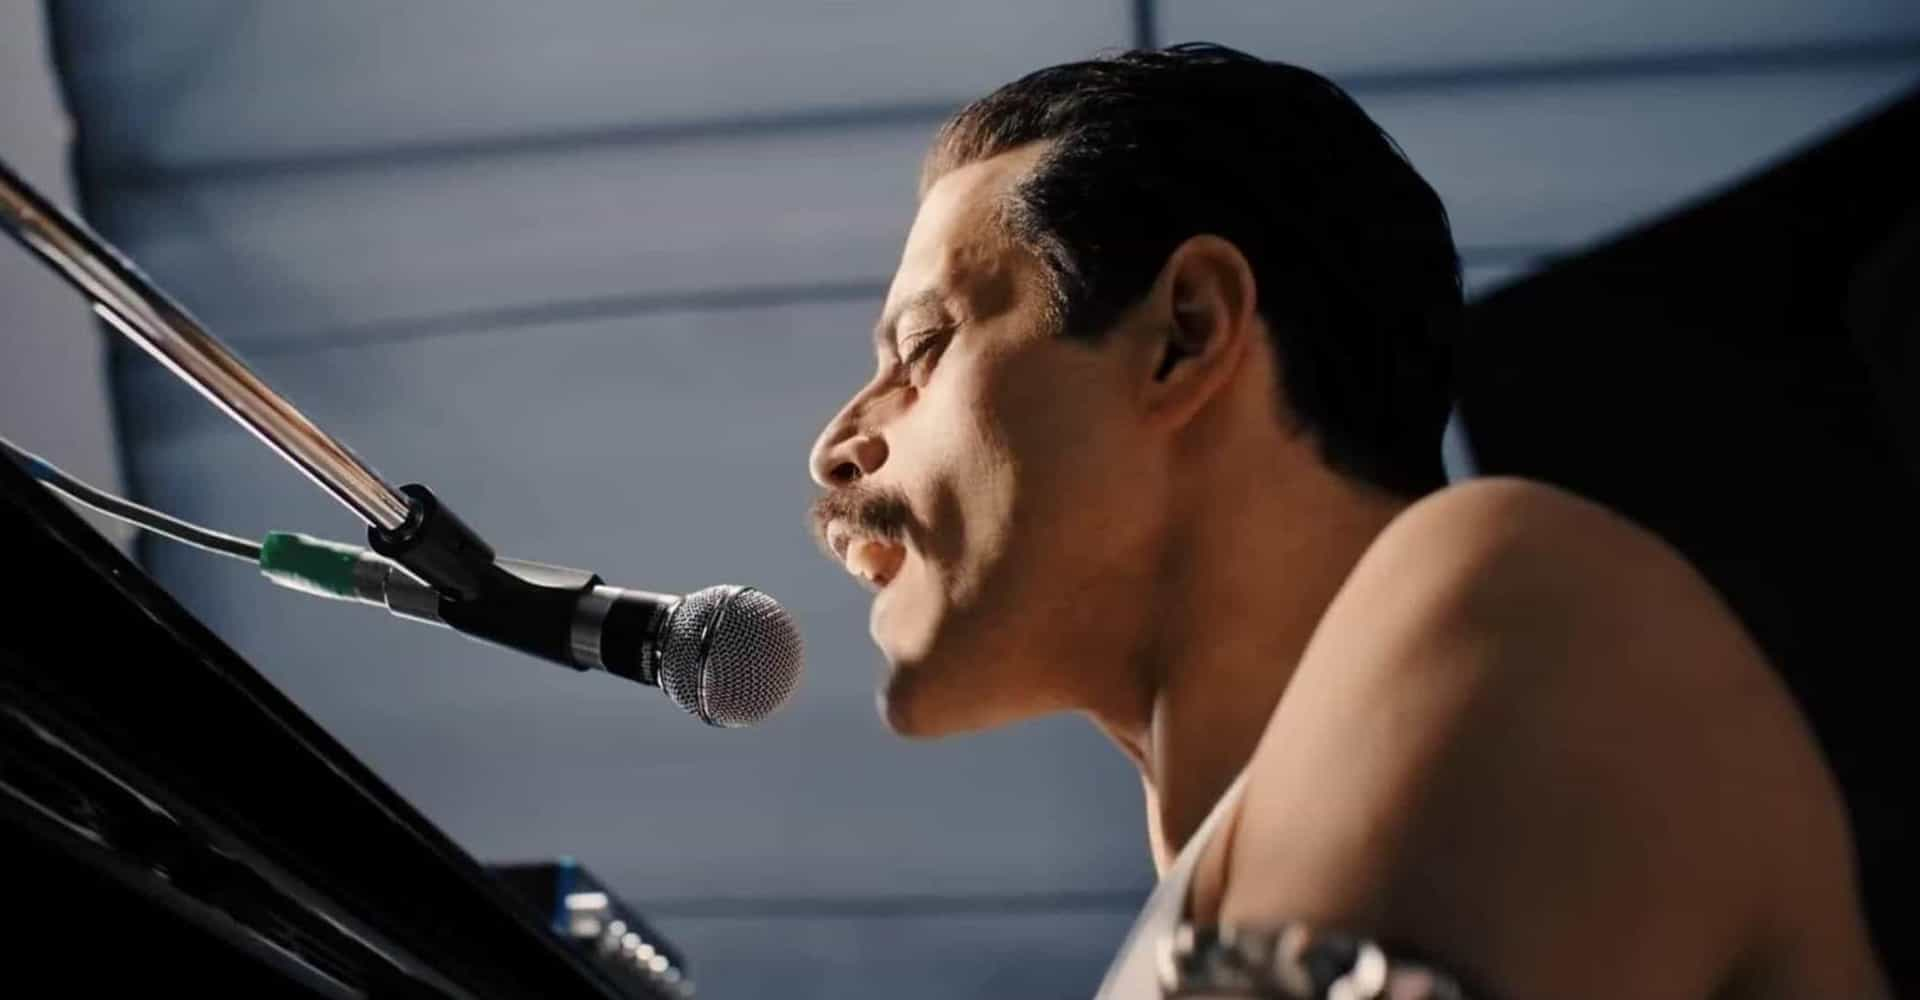 'Bohemian Rhapsody' and beyond: Rami Malek's magnificent roles